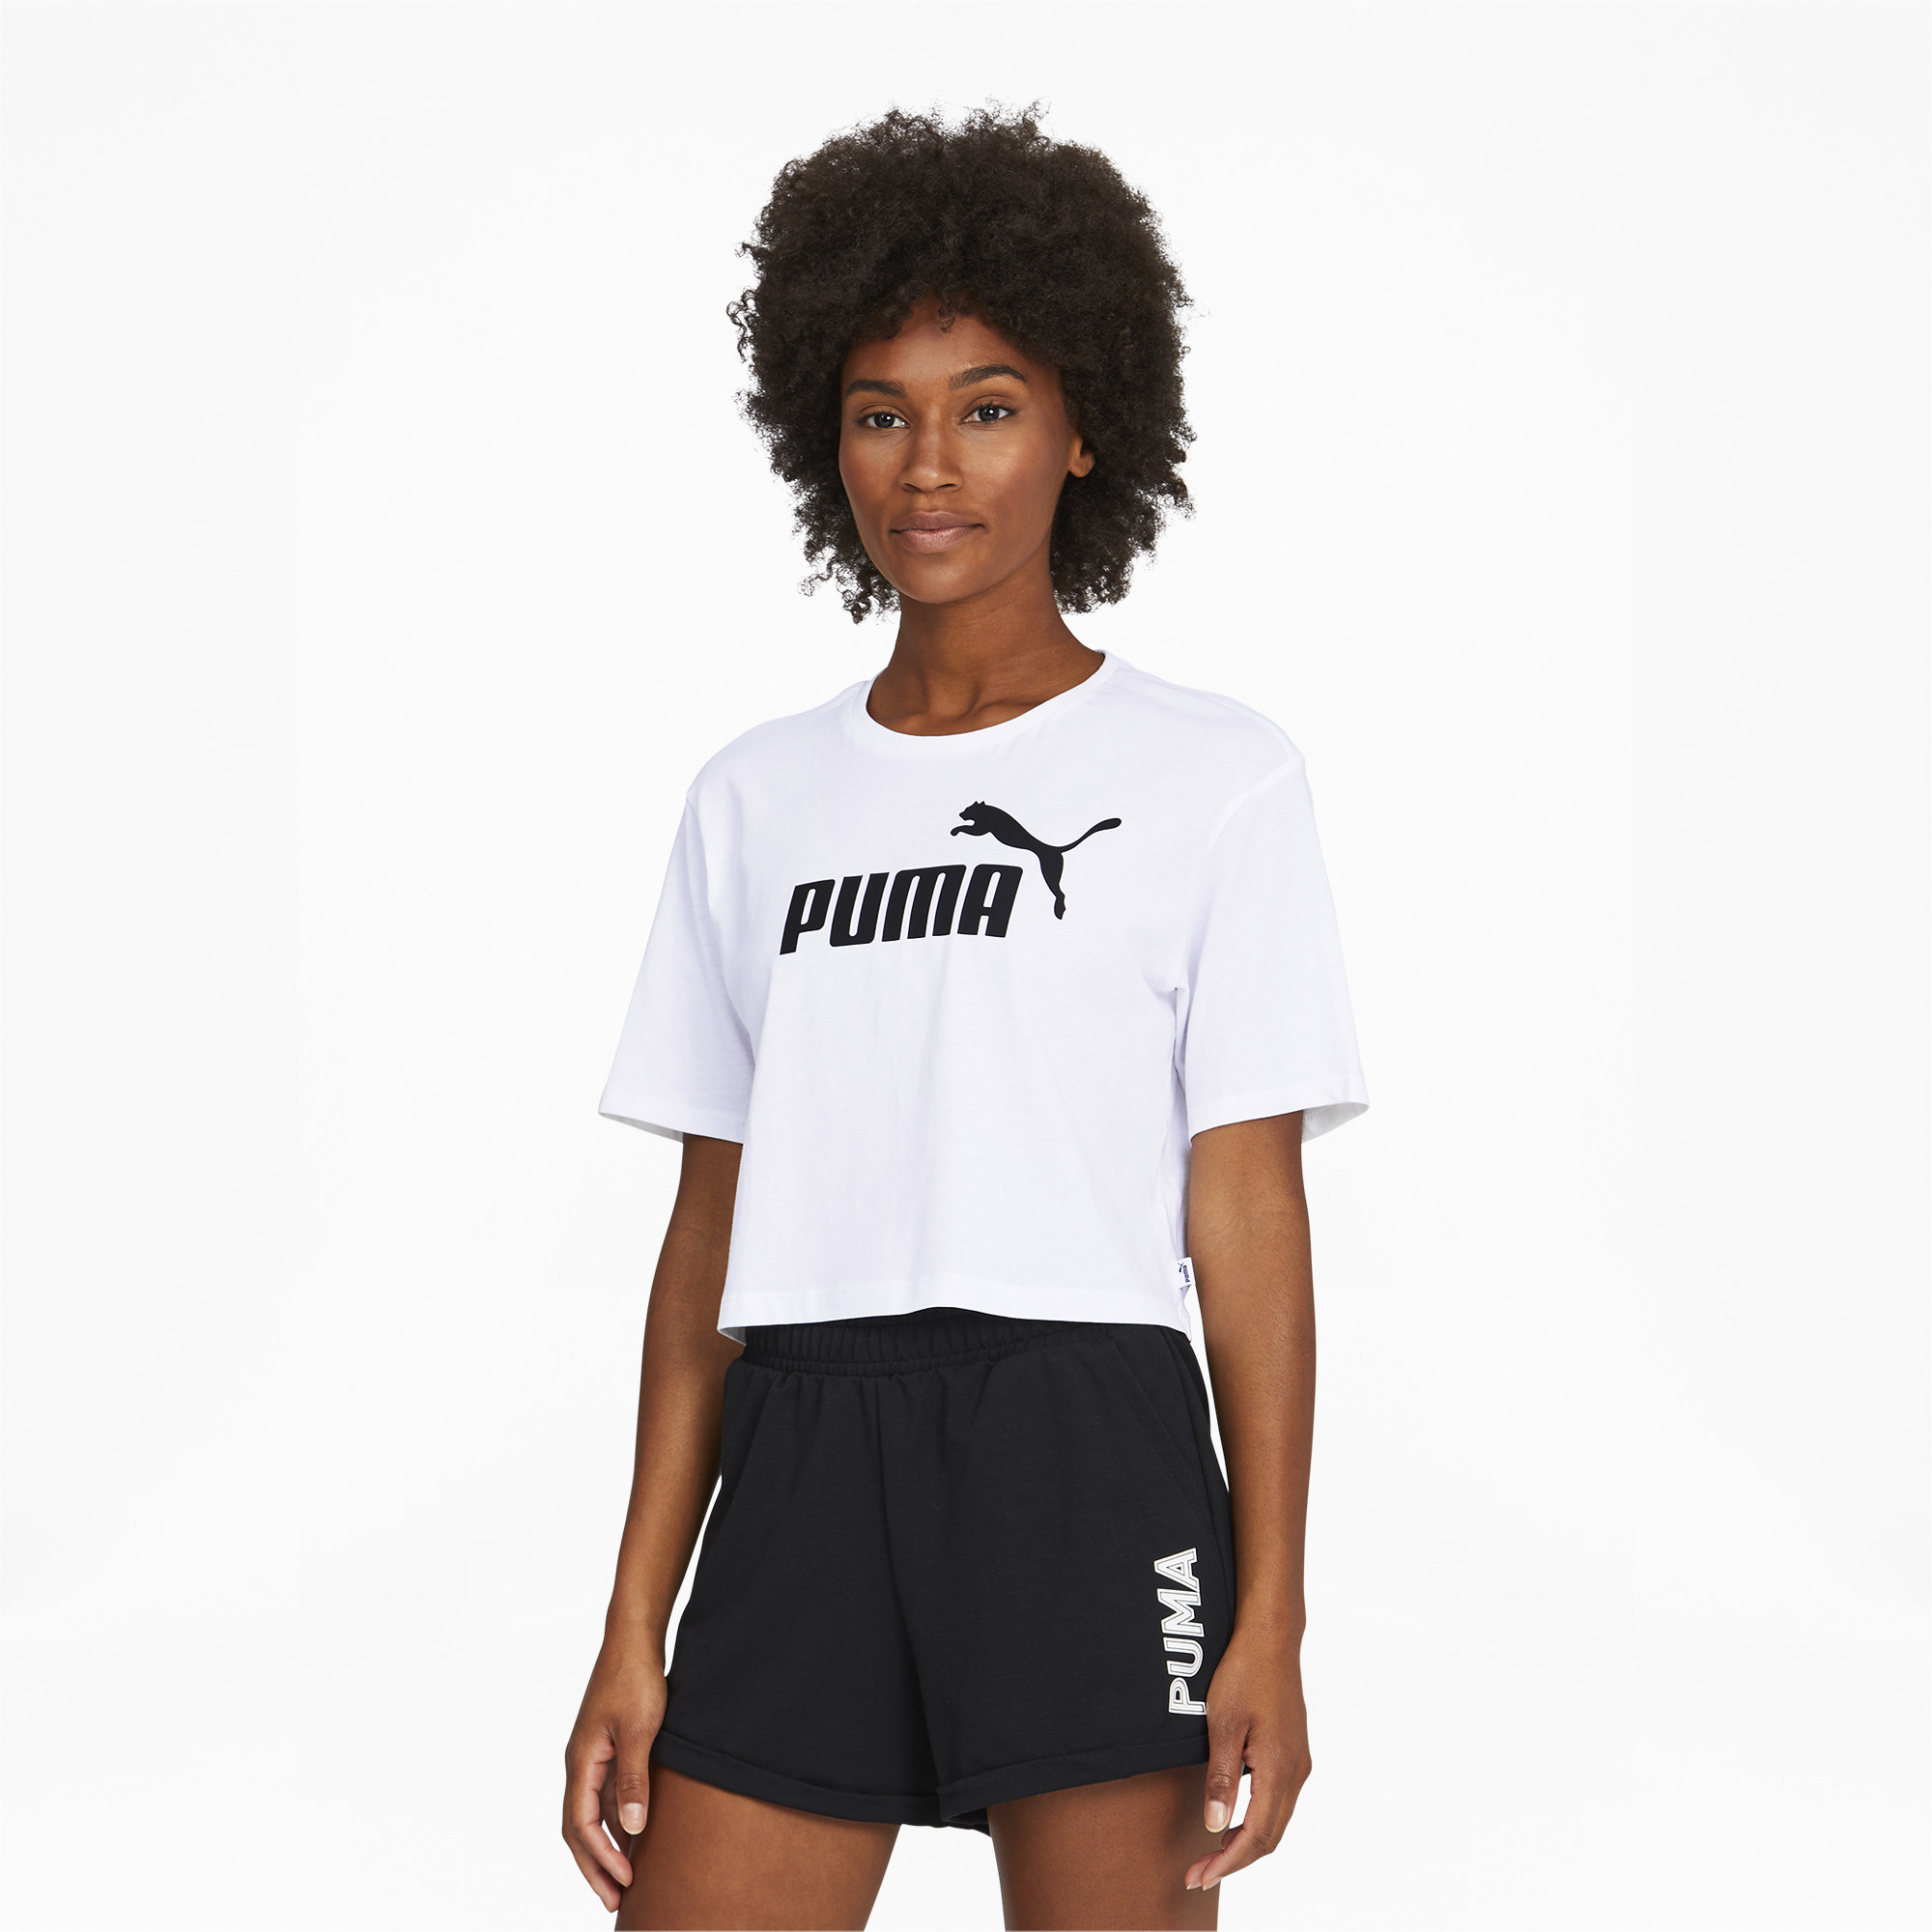 PUMA-Women-039-s-Cropped-Logo-Tee-Women-Crop-Top-Basics thumbnail 10